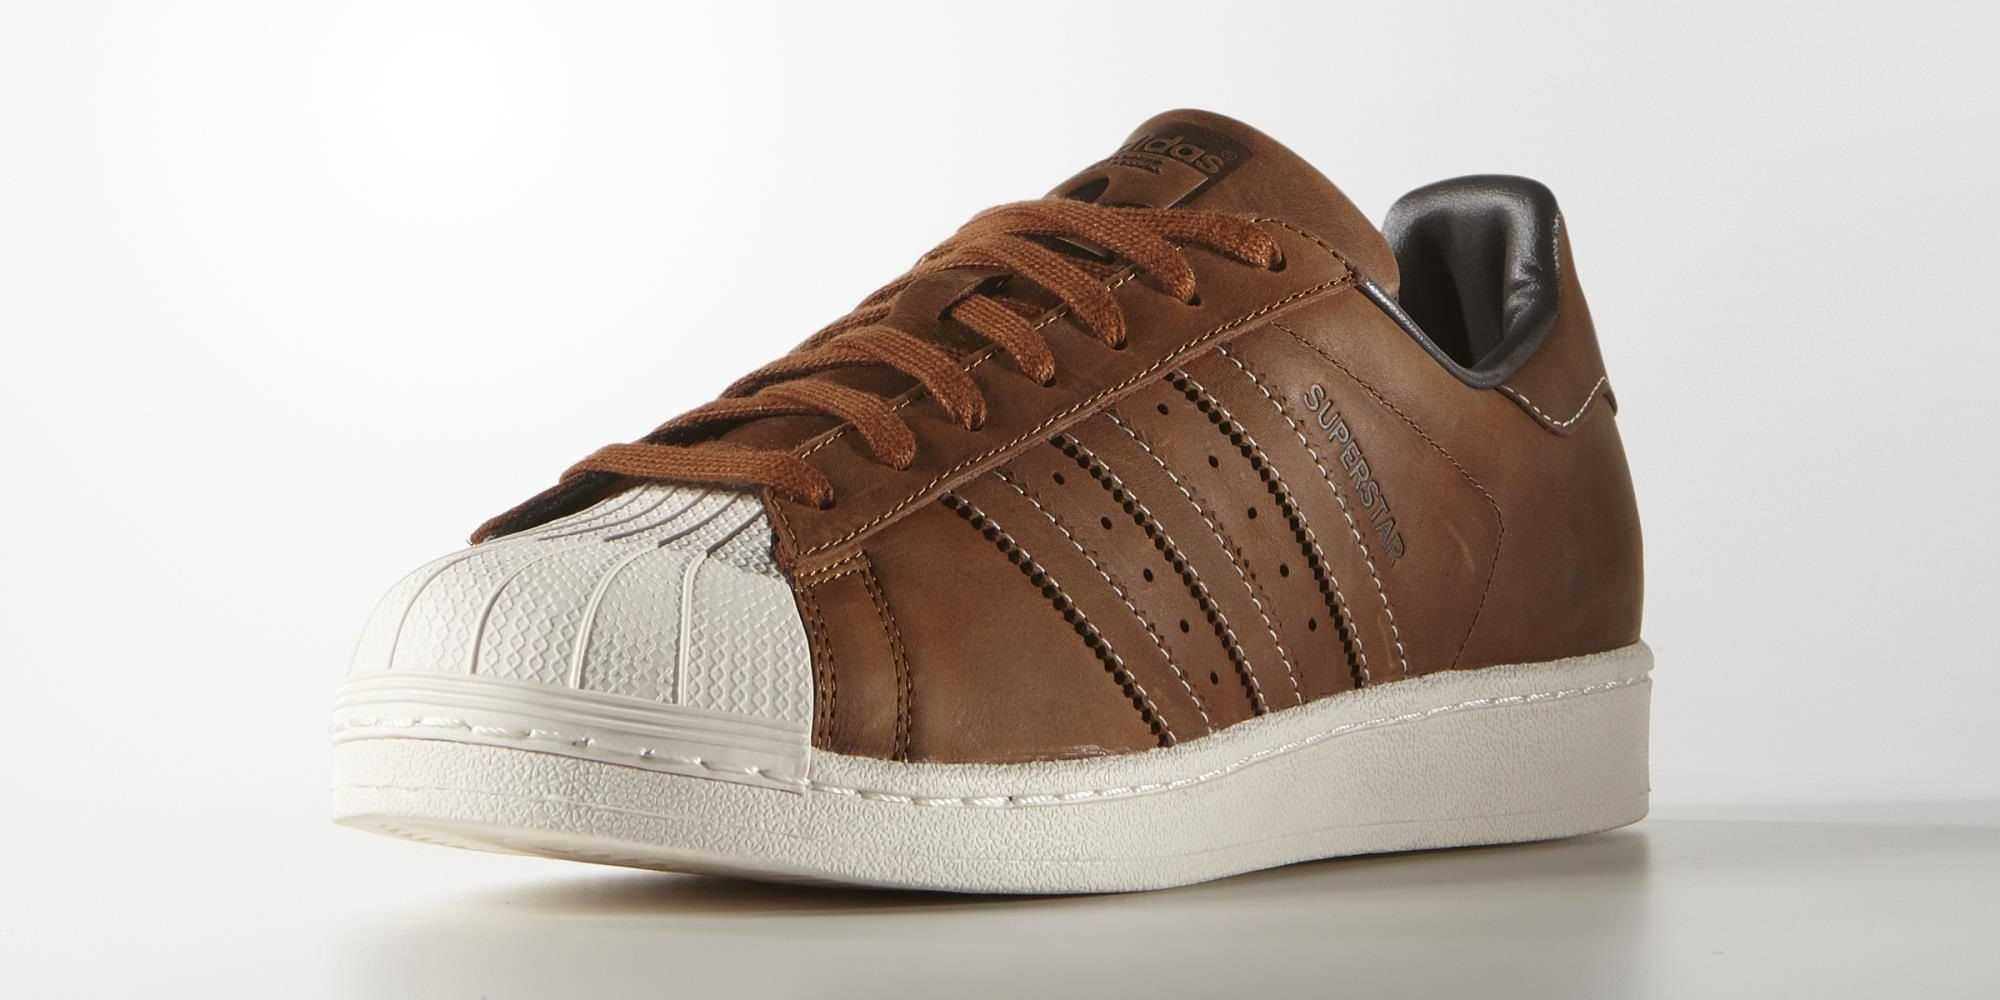 adidas superstars leather